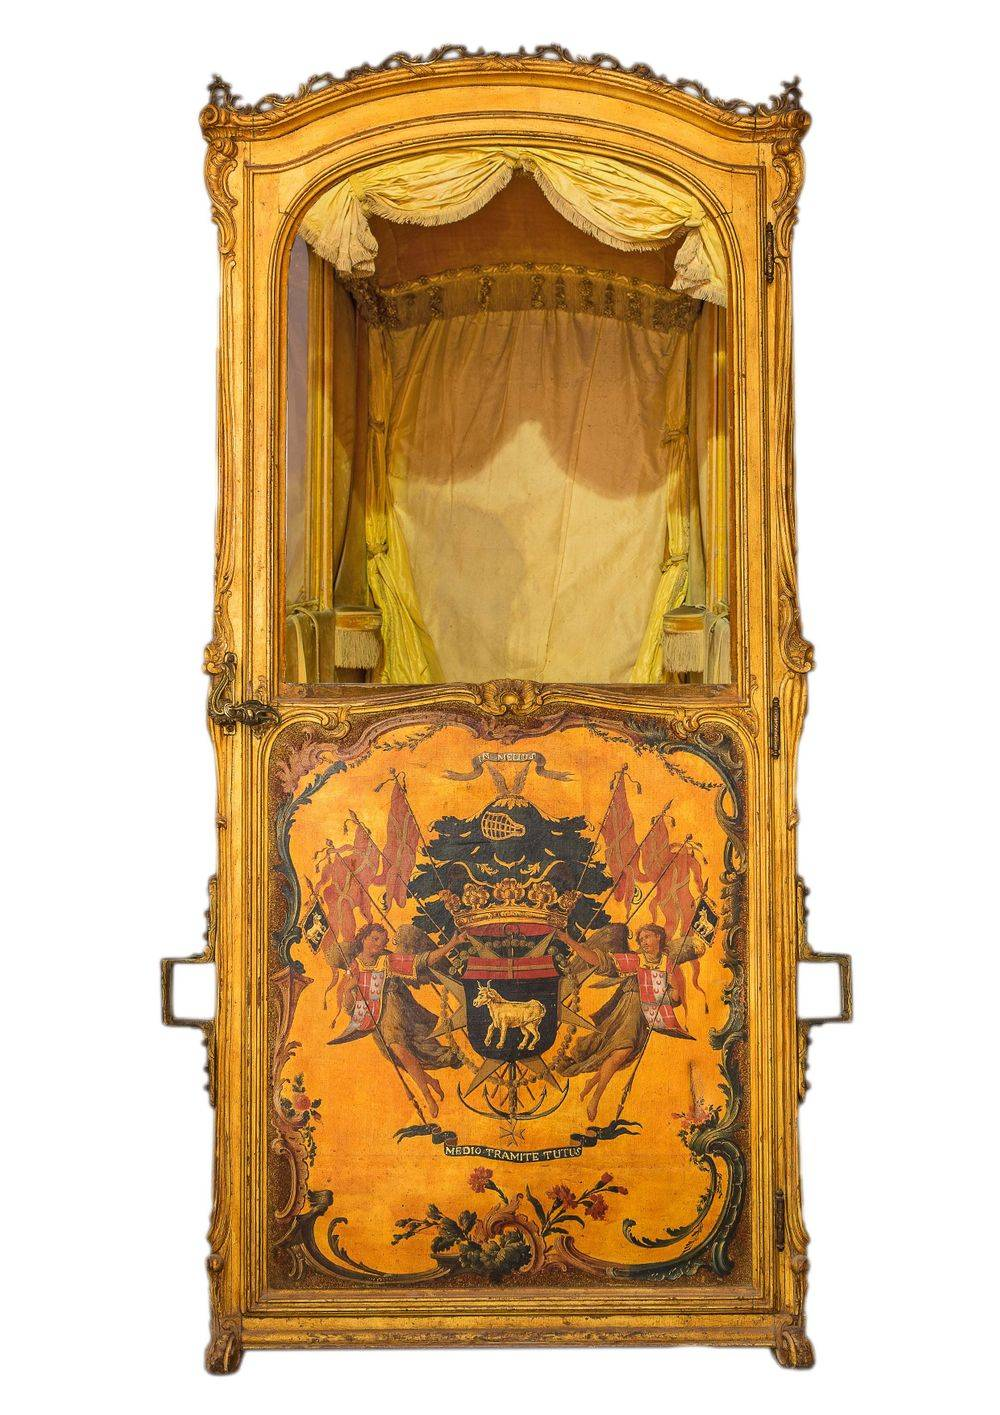 The Sedan Chair